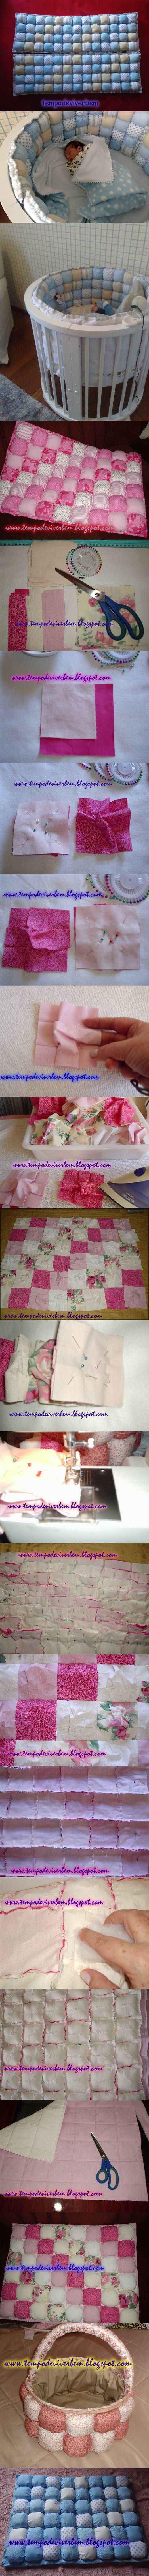 DIY Patchwork Baby Sleeping Basket Bumper | iCreativeIdeas.com Follow Us on Facebook --> https://www.facebook.com/icreativeideas